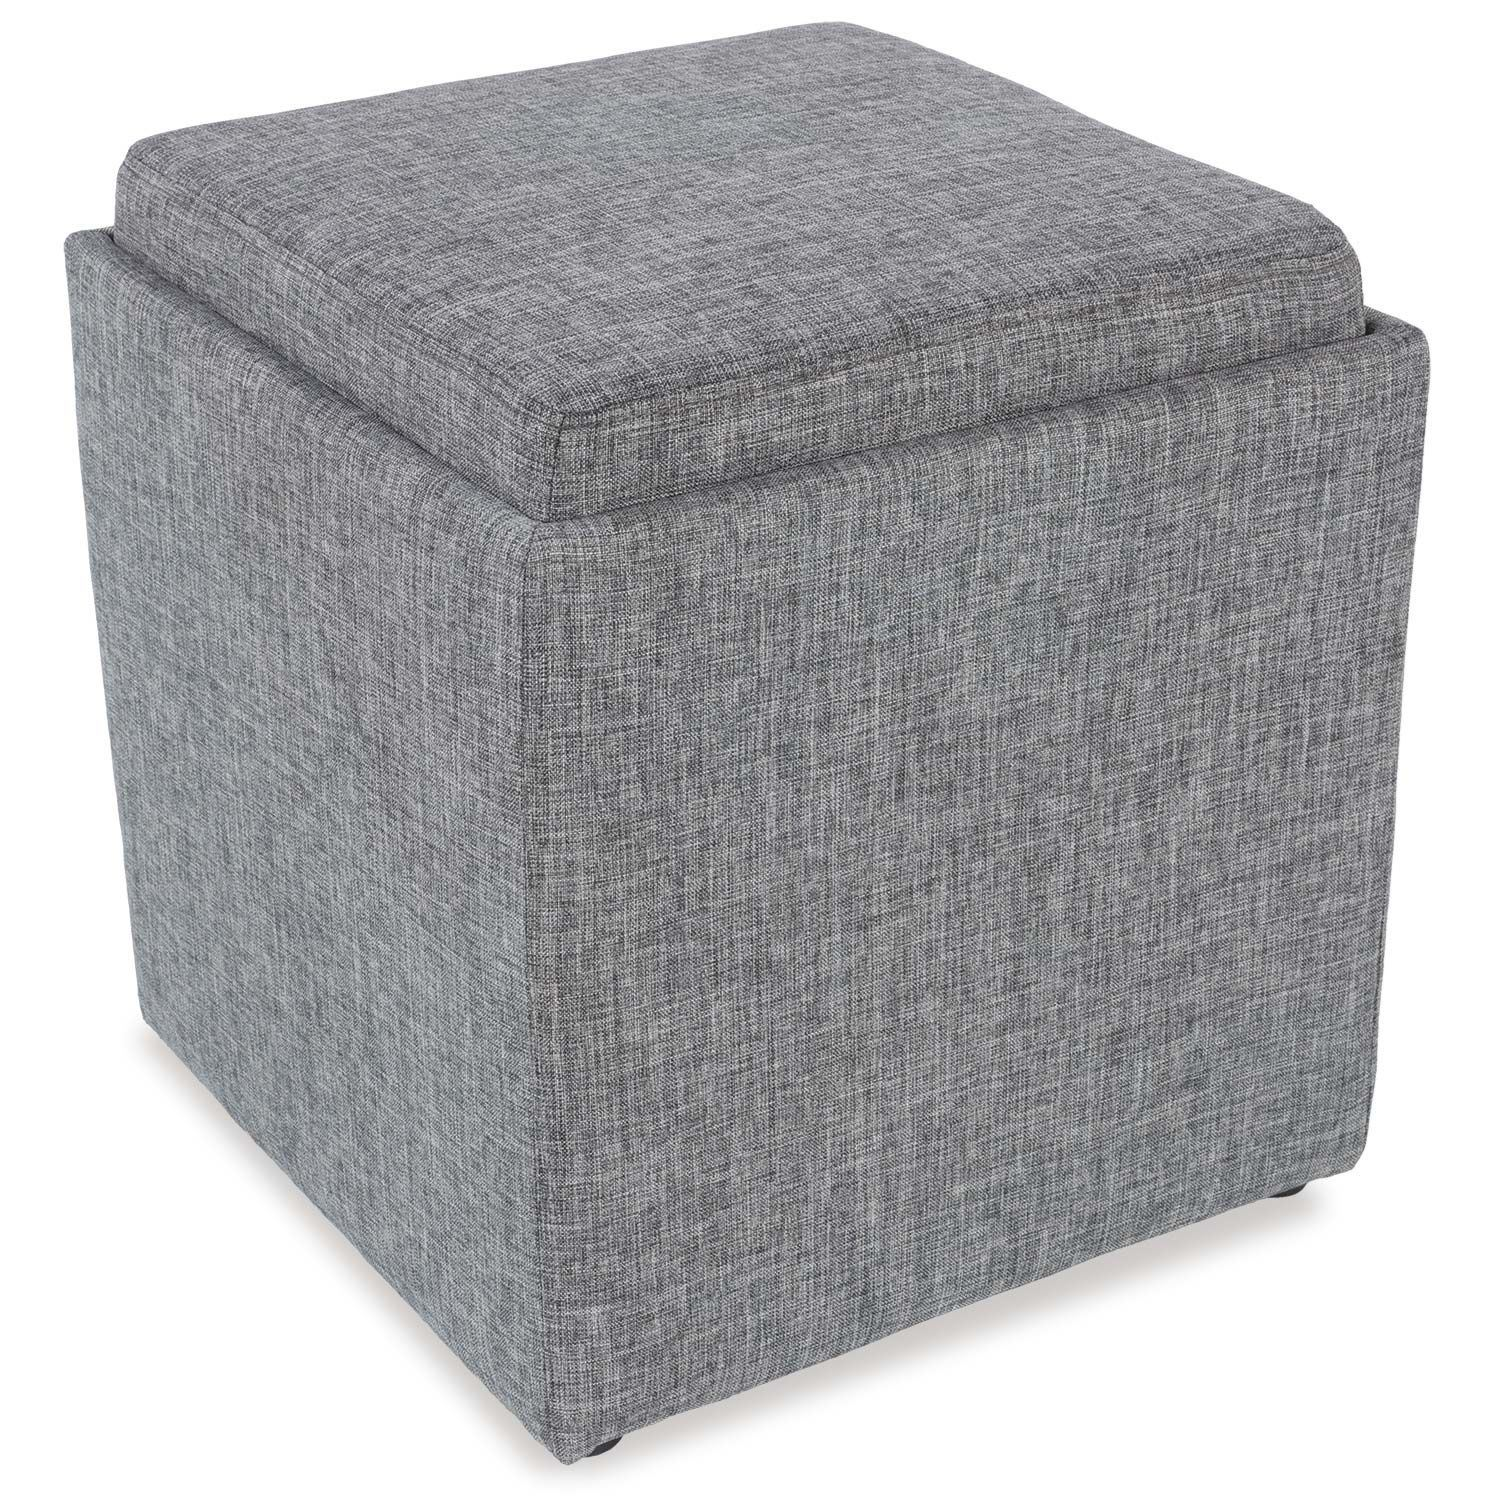 Picture of Gray Storage Ottoman with Tray